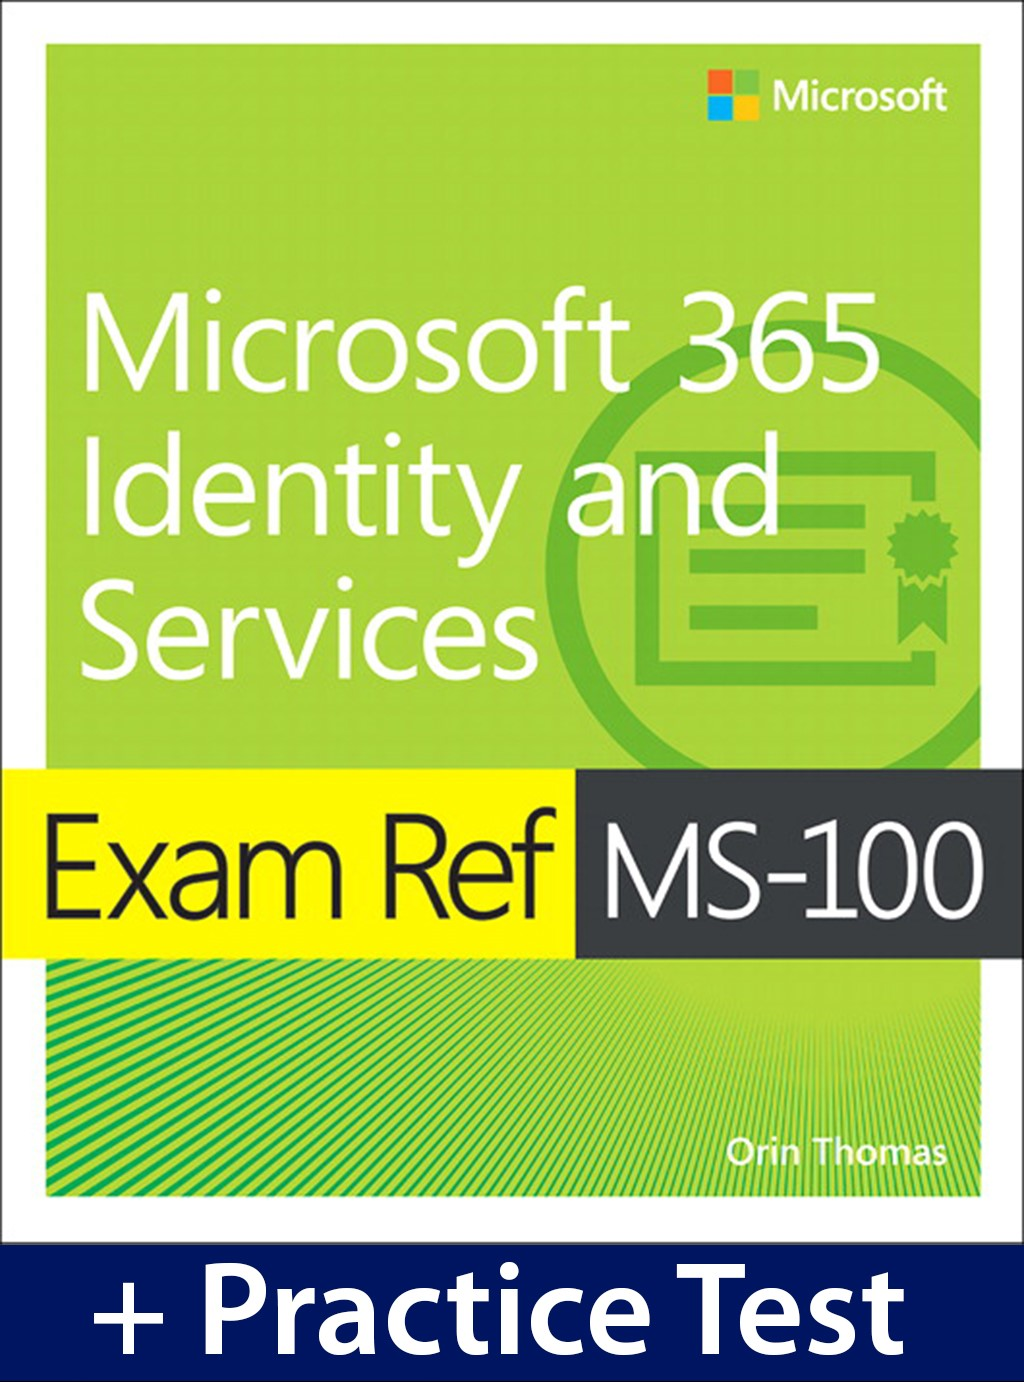 Exam Ref MS-100 Microsoft 365 Identity and Services with Practice Test